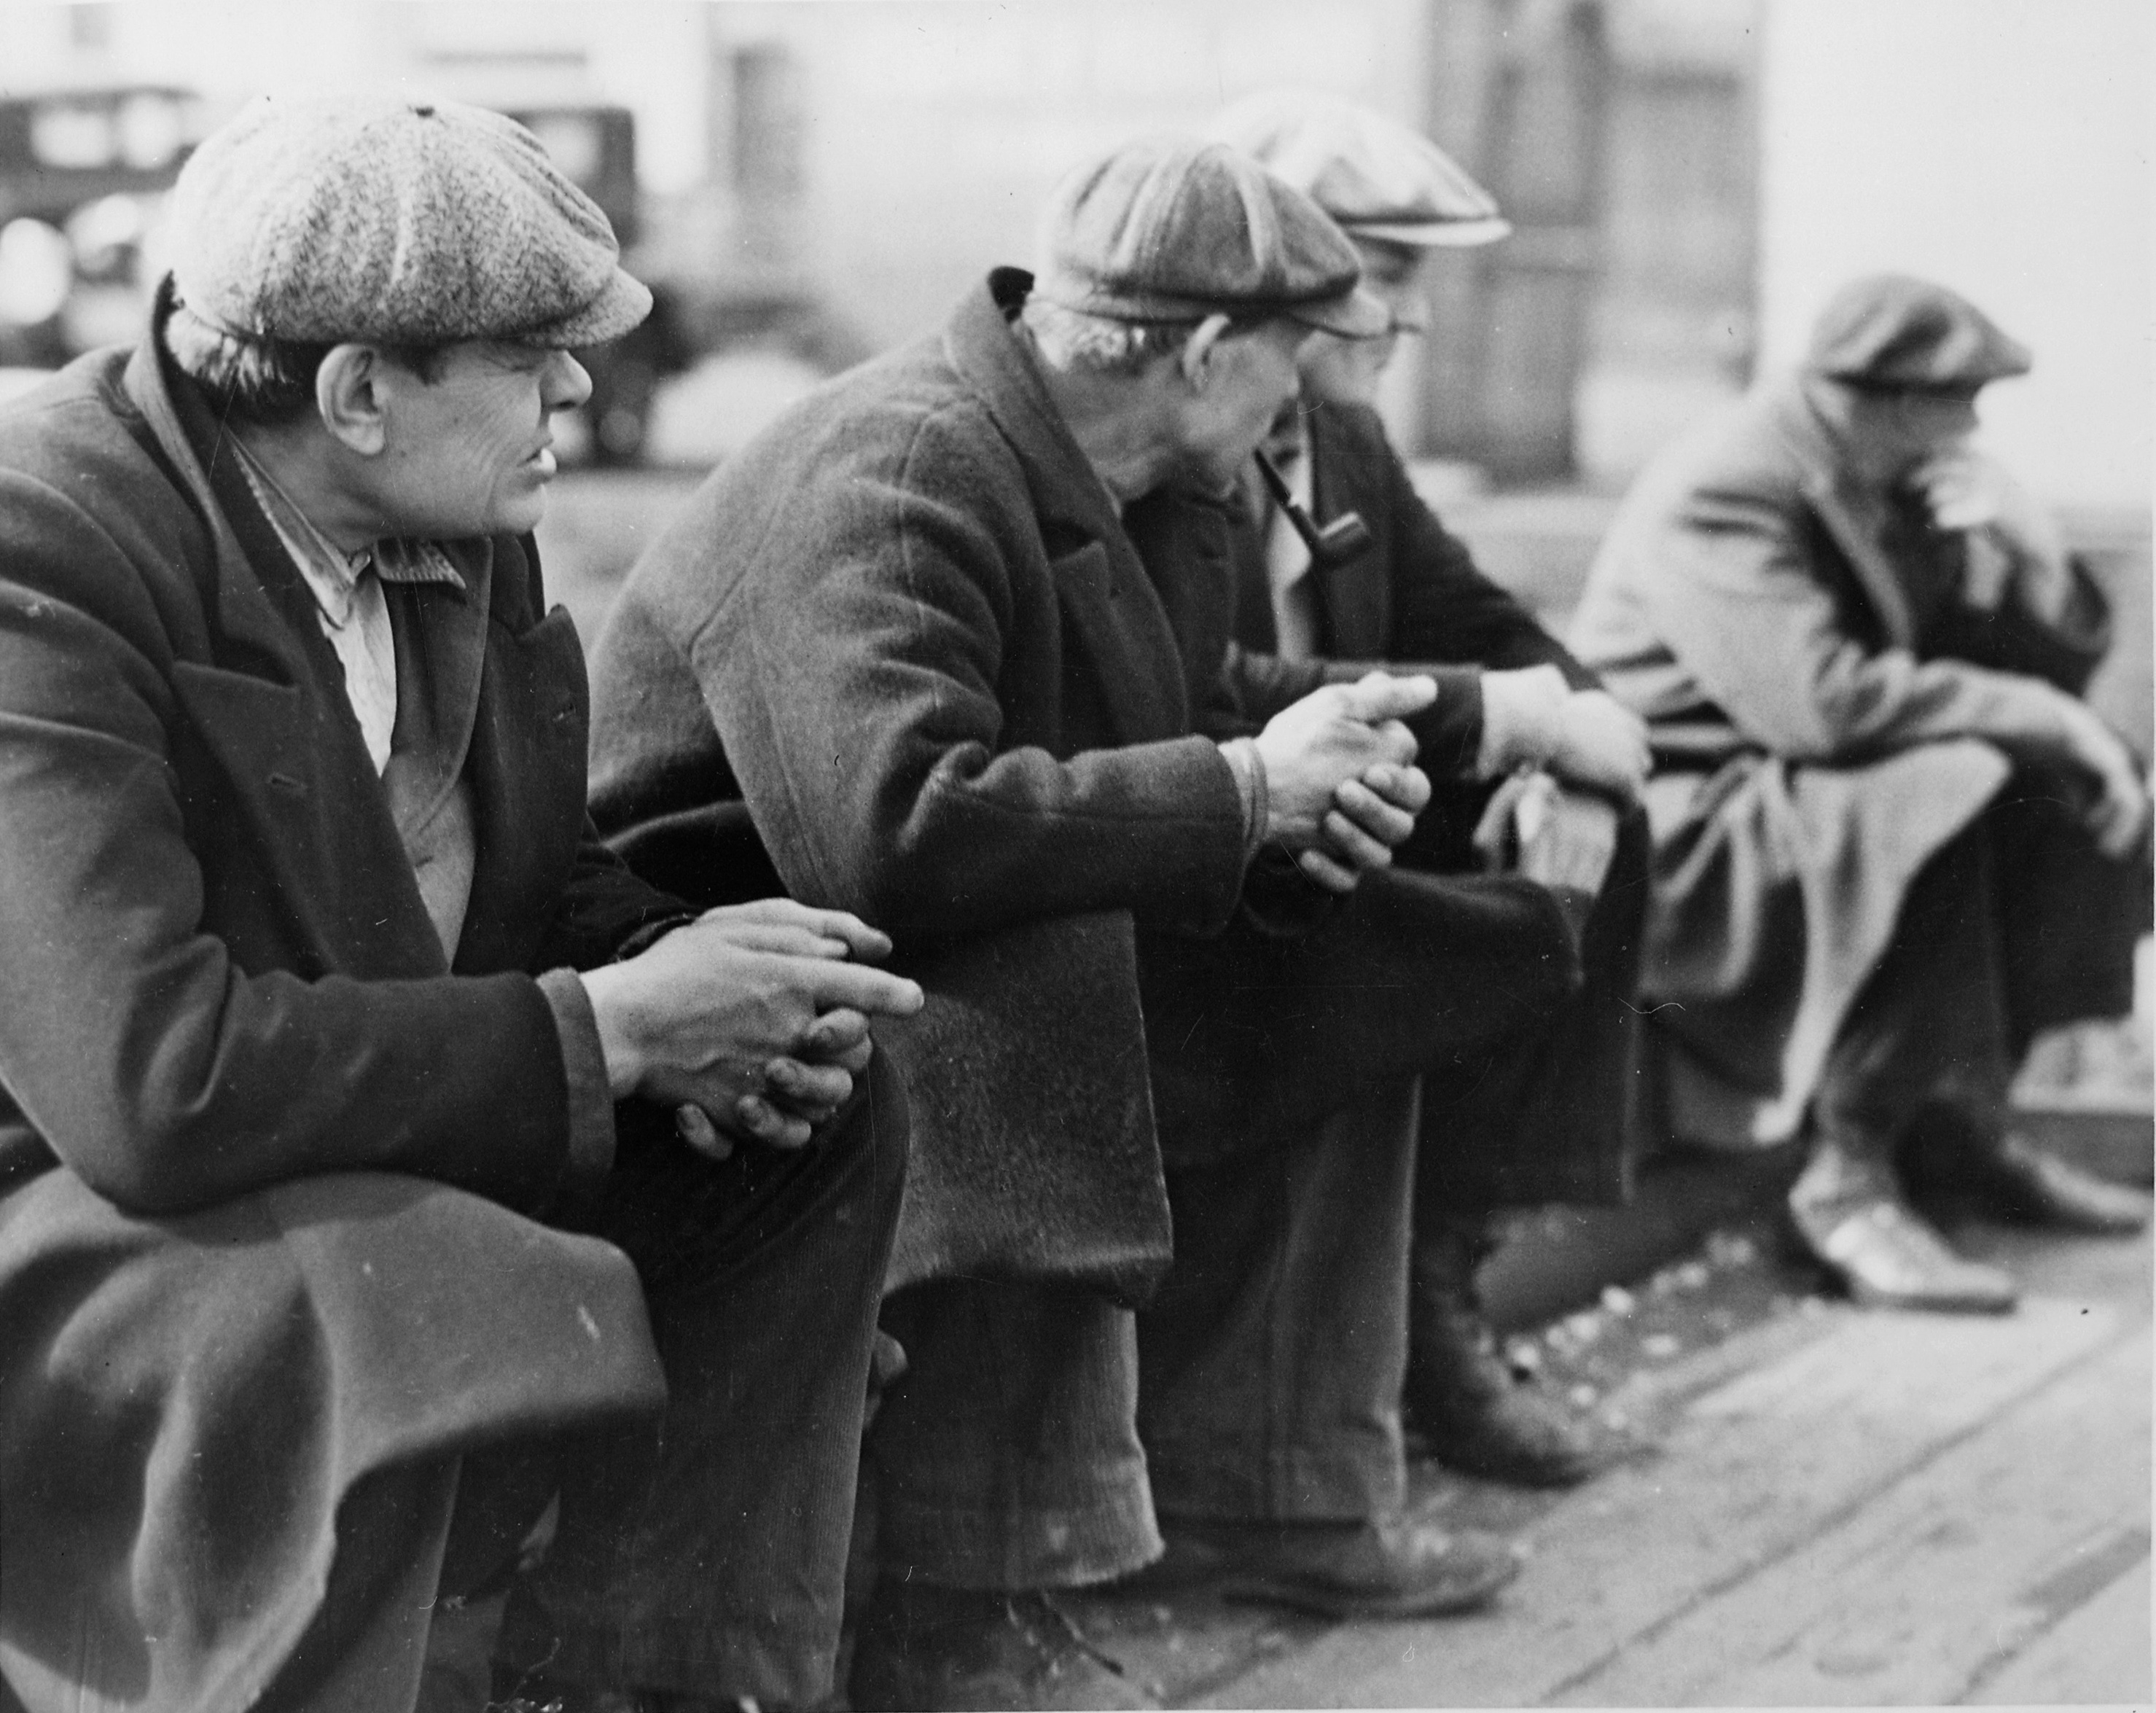 Row of men at the New York City docks out of work during the depression, 1934. U.S. National Archives' Local Identifier: 69-R-1L-3